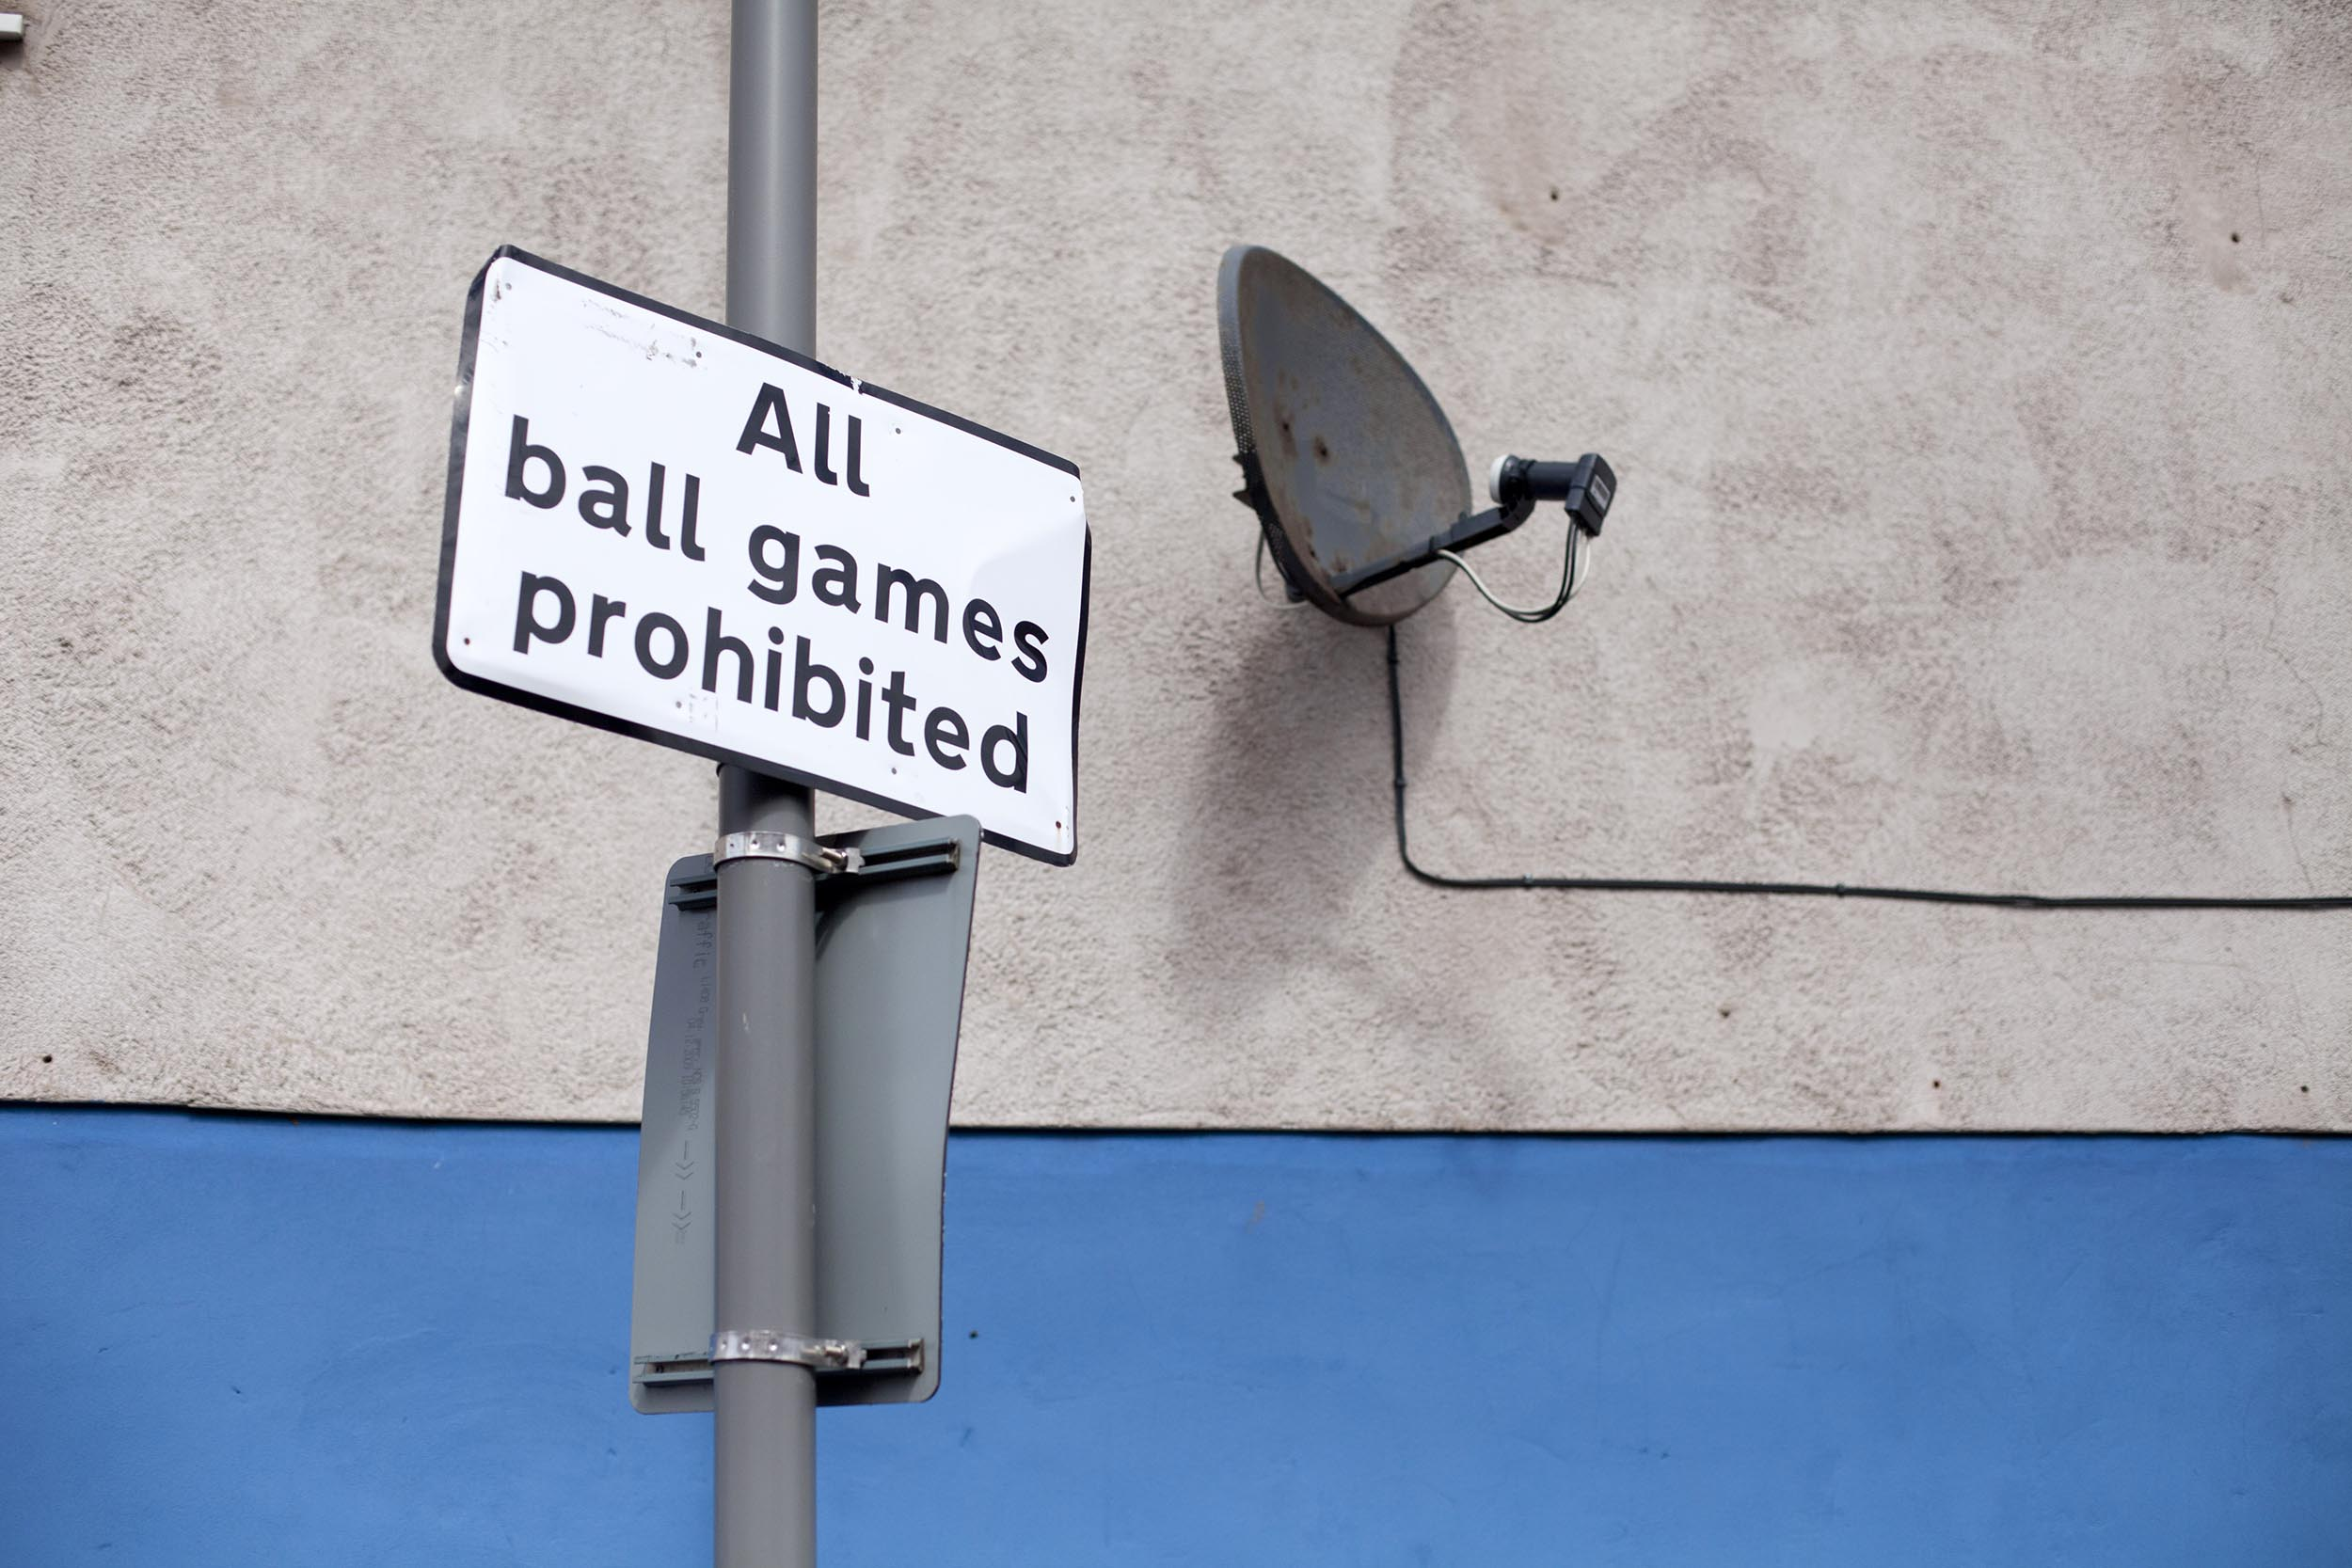 No ball games sign near Goodison Park, Liverpool - Documentary Photography